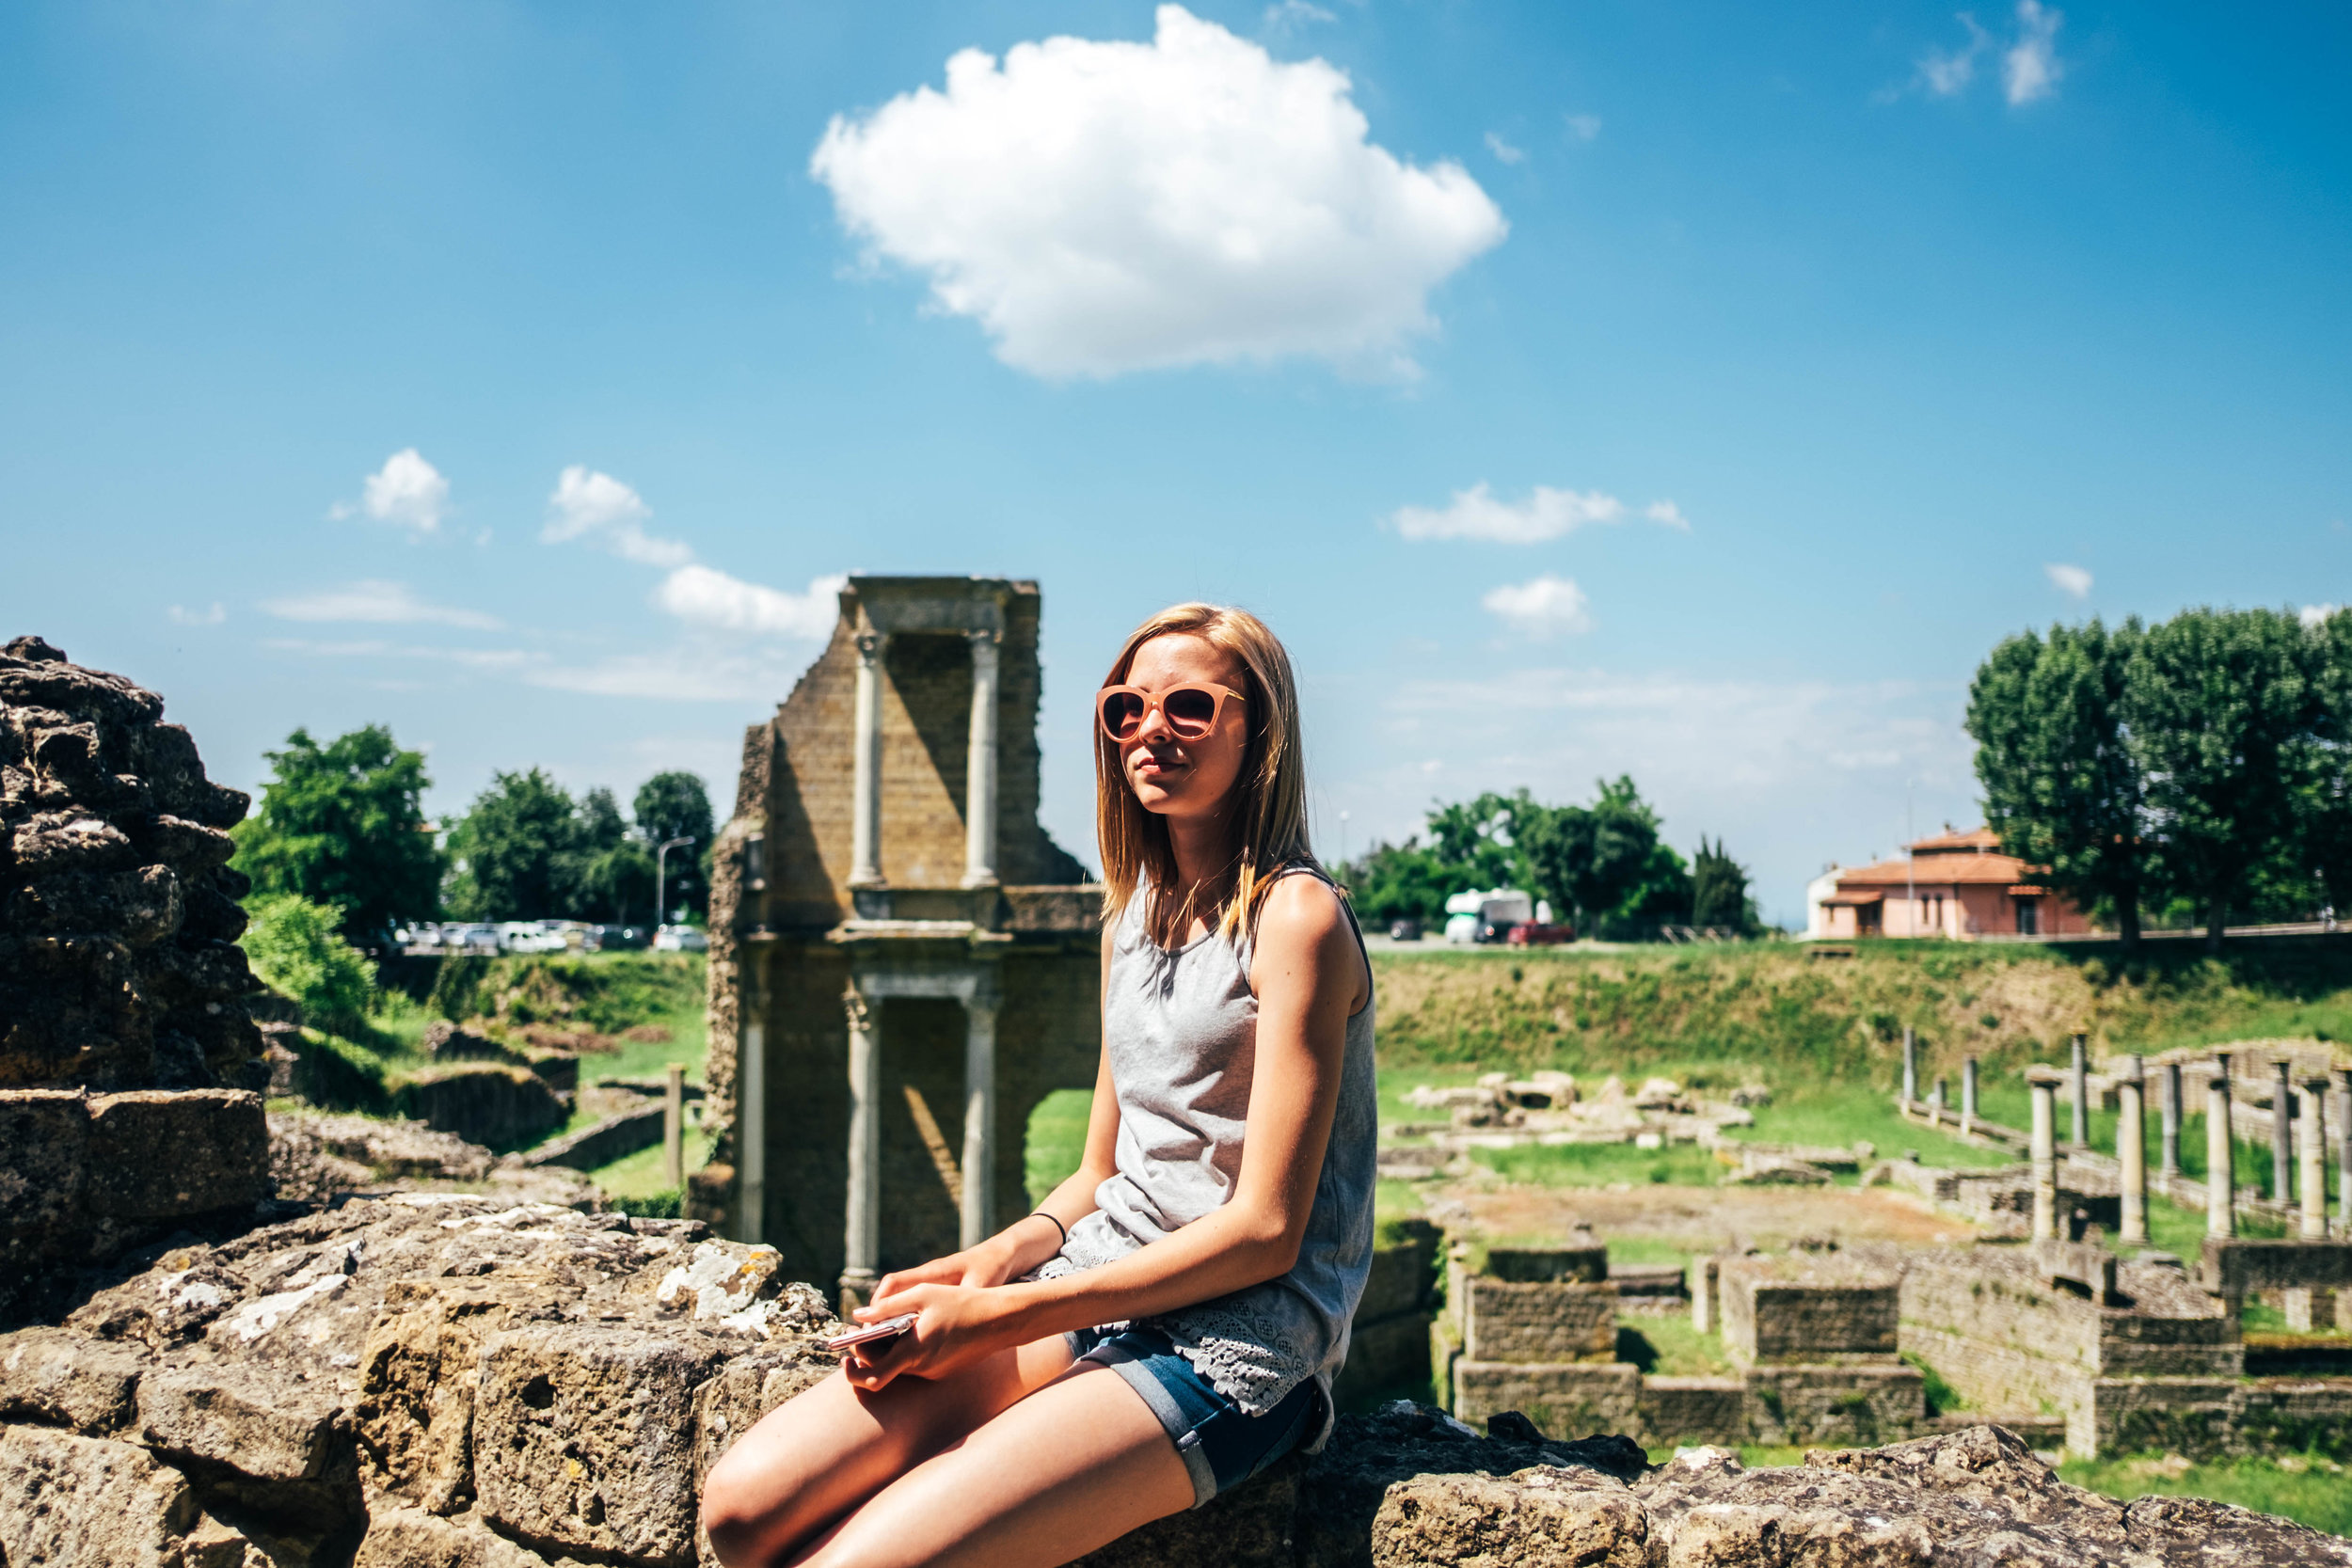 Teen girl at Roman Ruins Volterra Italy Essex Documentary Family Wedding Photographer